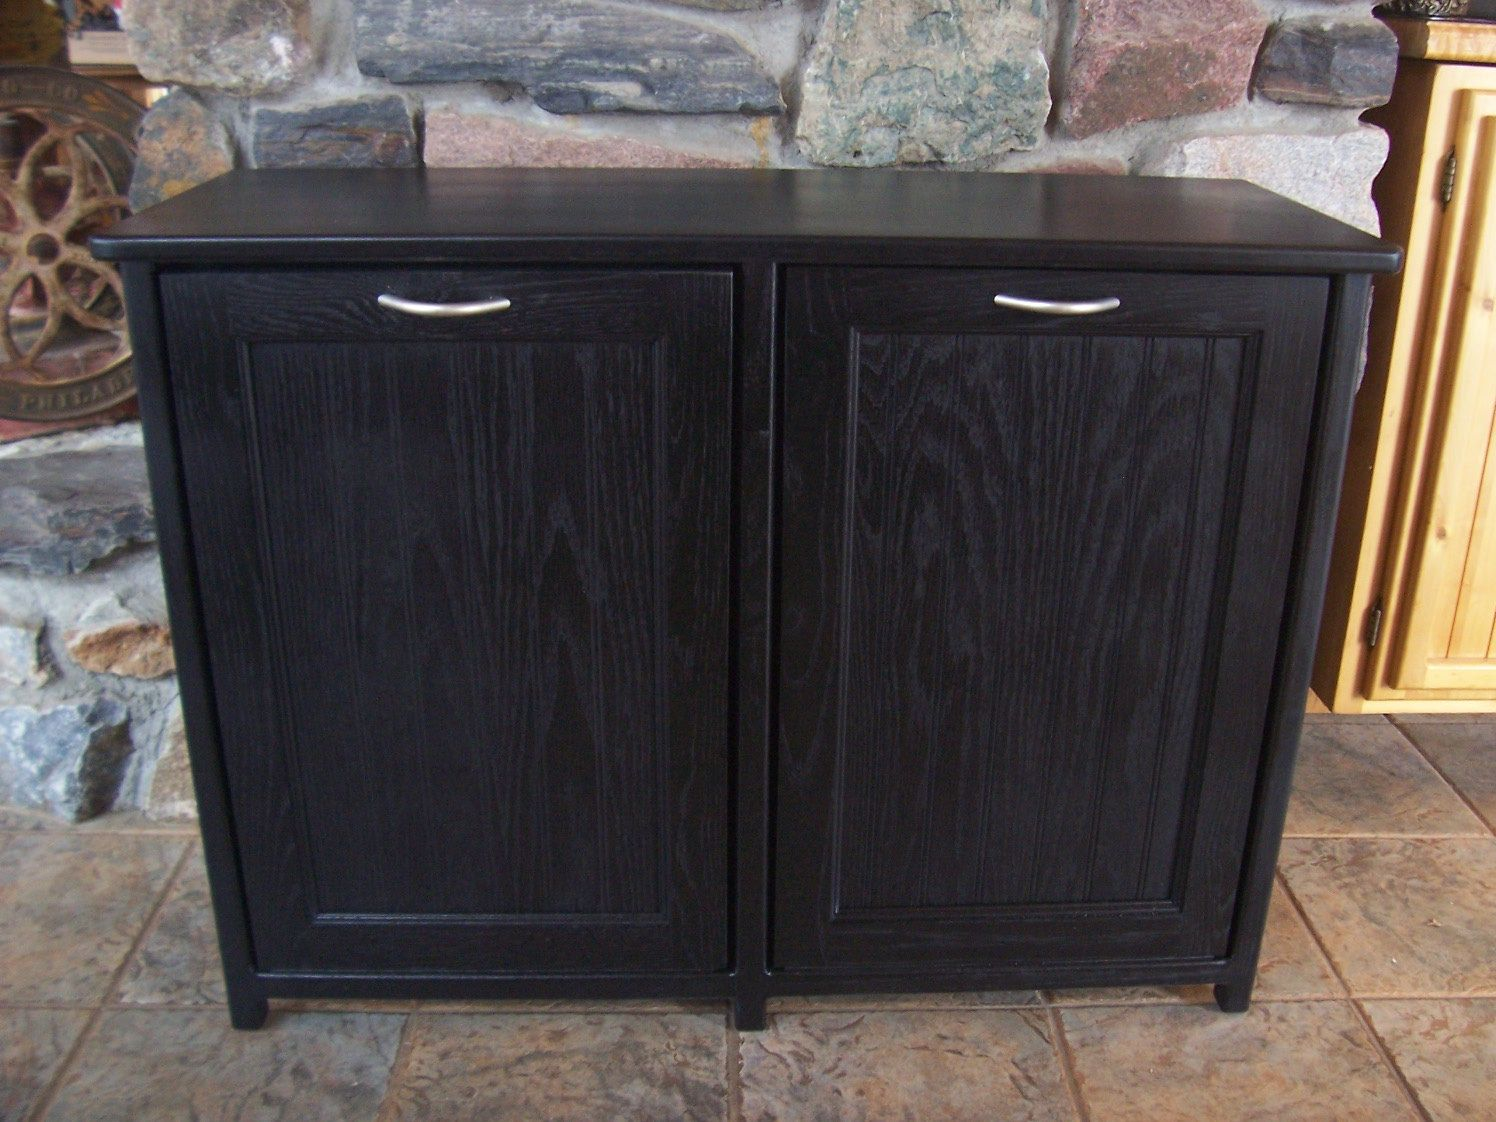 New Black Painted Wood Double Trash Bin Cabinet Garbage Can Tilt ...